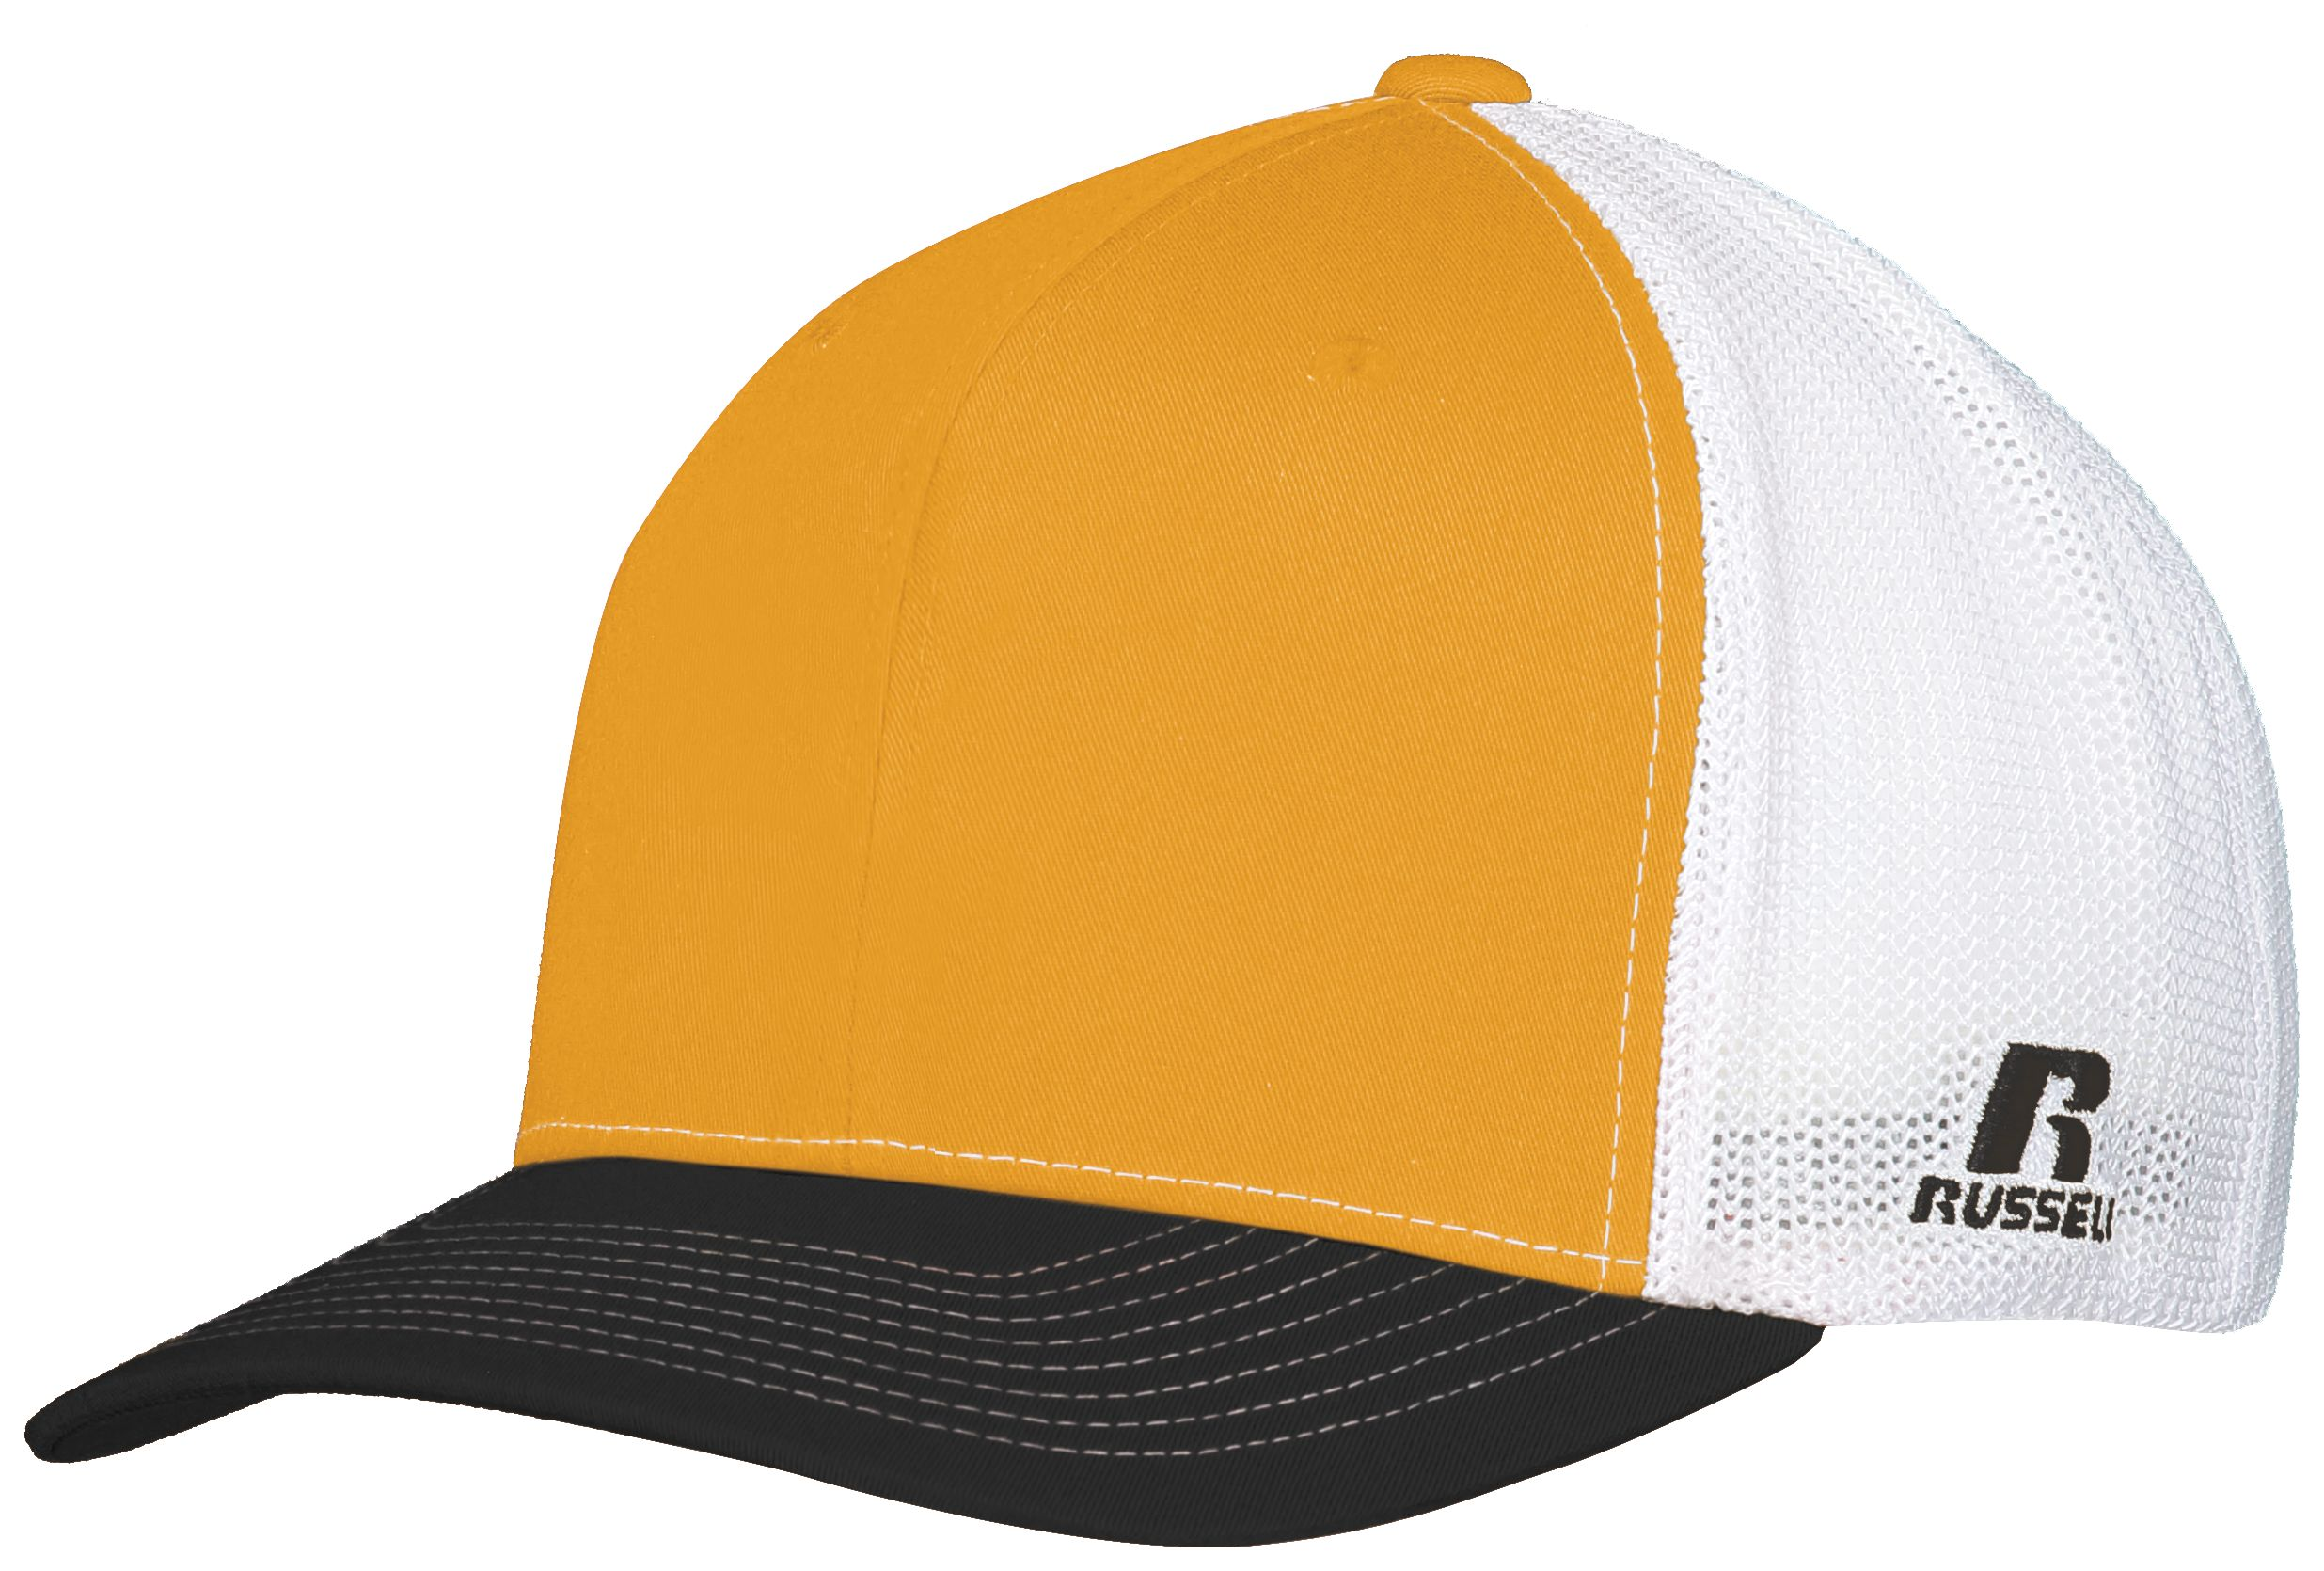 Youth Flexfit Twill Mesh Cap - GOLD/BLACK/WHITE